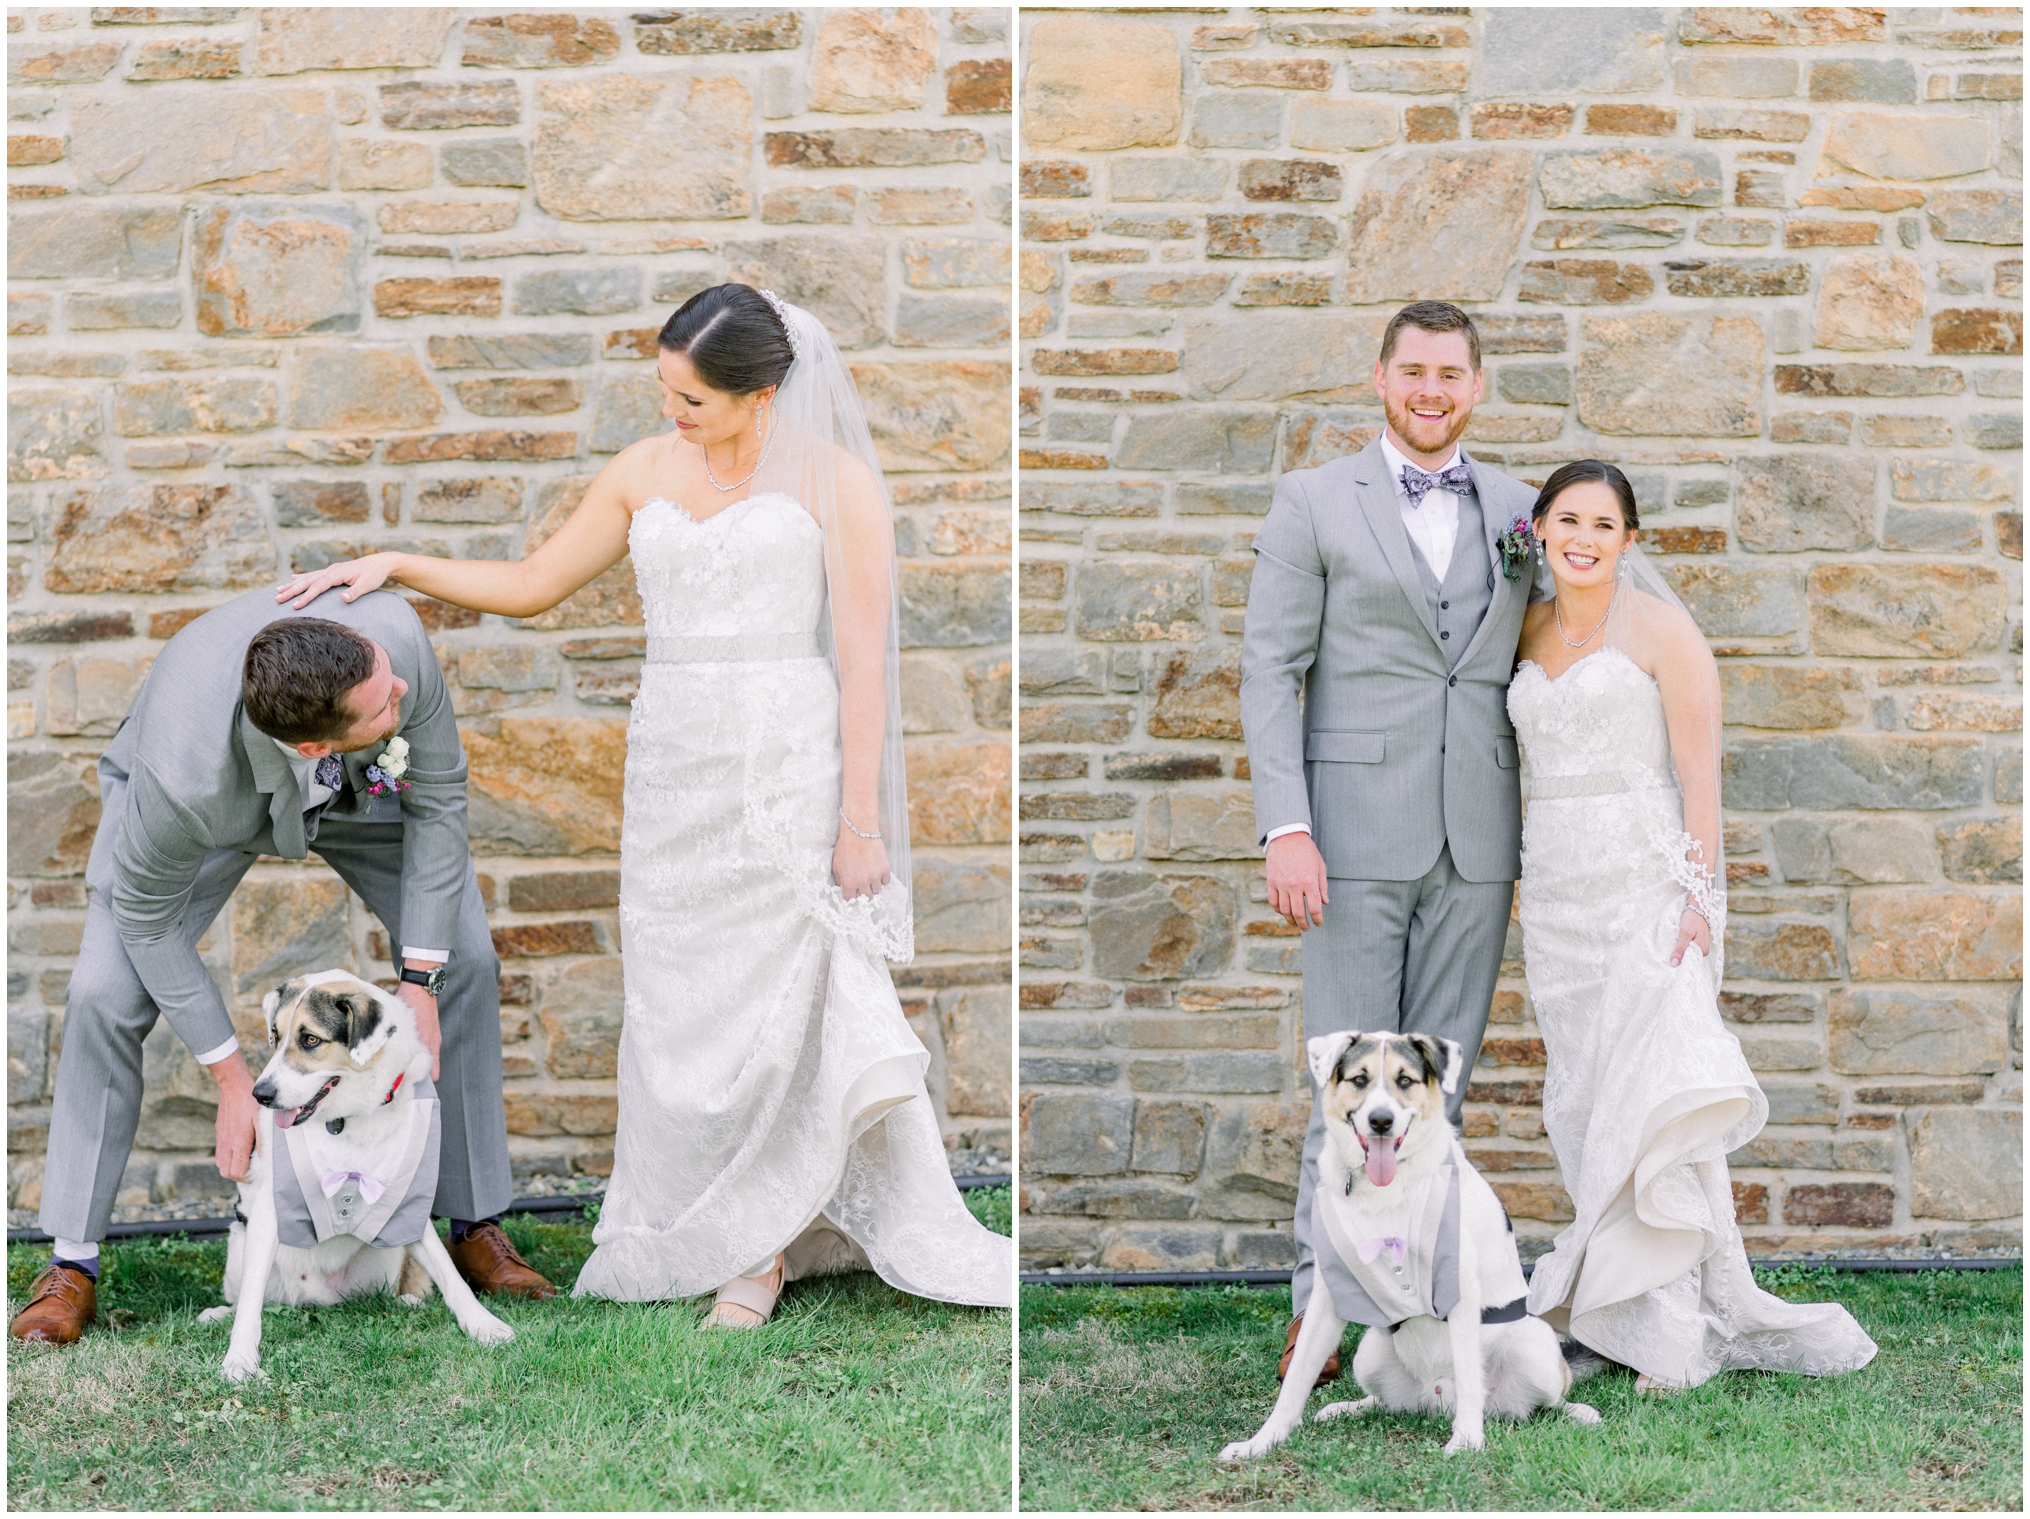 Krista Brackin Photography | April Wedding at The Carriage House at Rockwood Park_0041.jpg